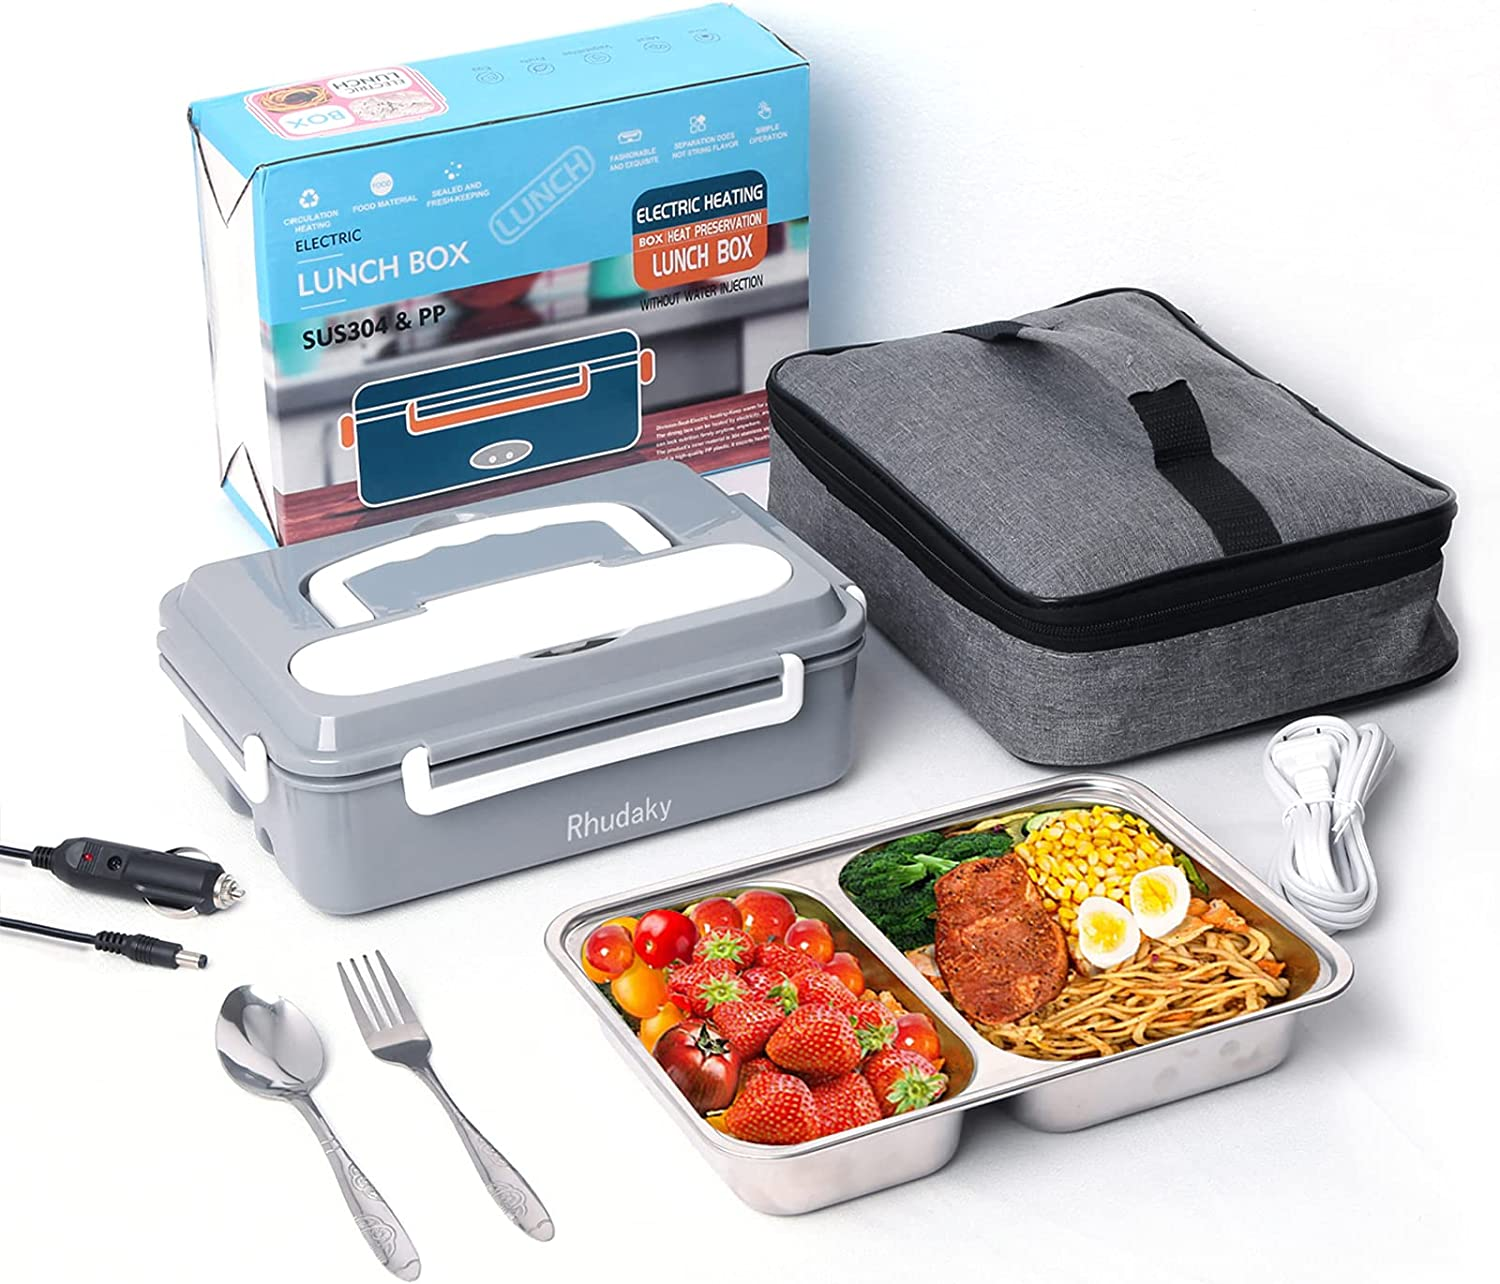 Electric Lunch Box Leak Proof ,Food Heater for Truck & Office Stainless Steel Portable Food Warmer Lunch Box Mini Microwave Snack Containers - Fast Heating